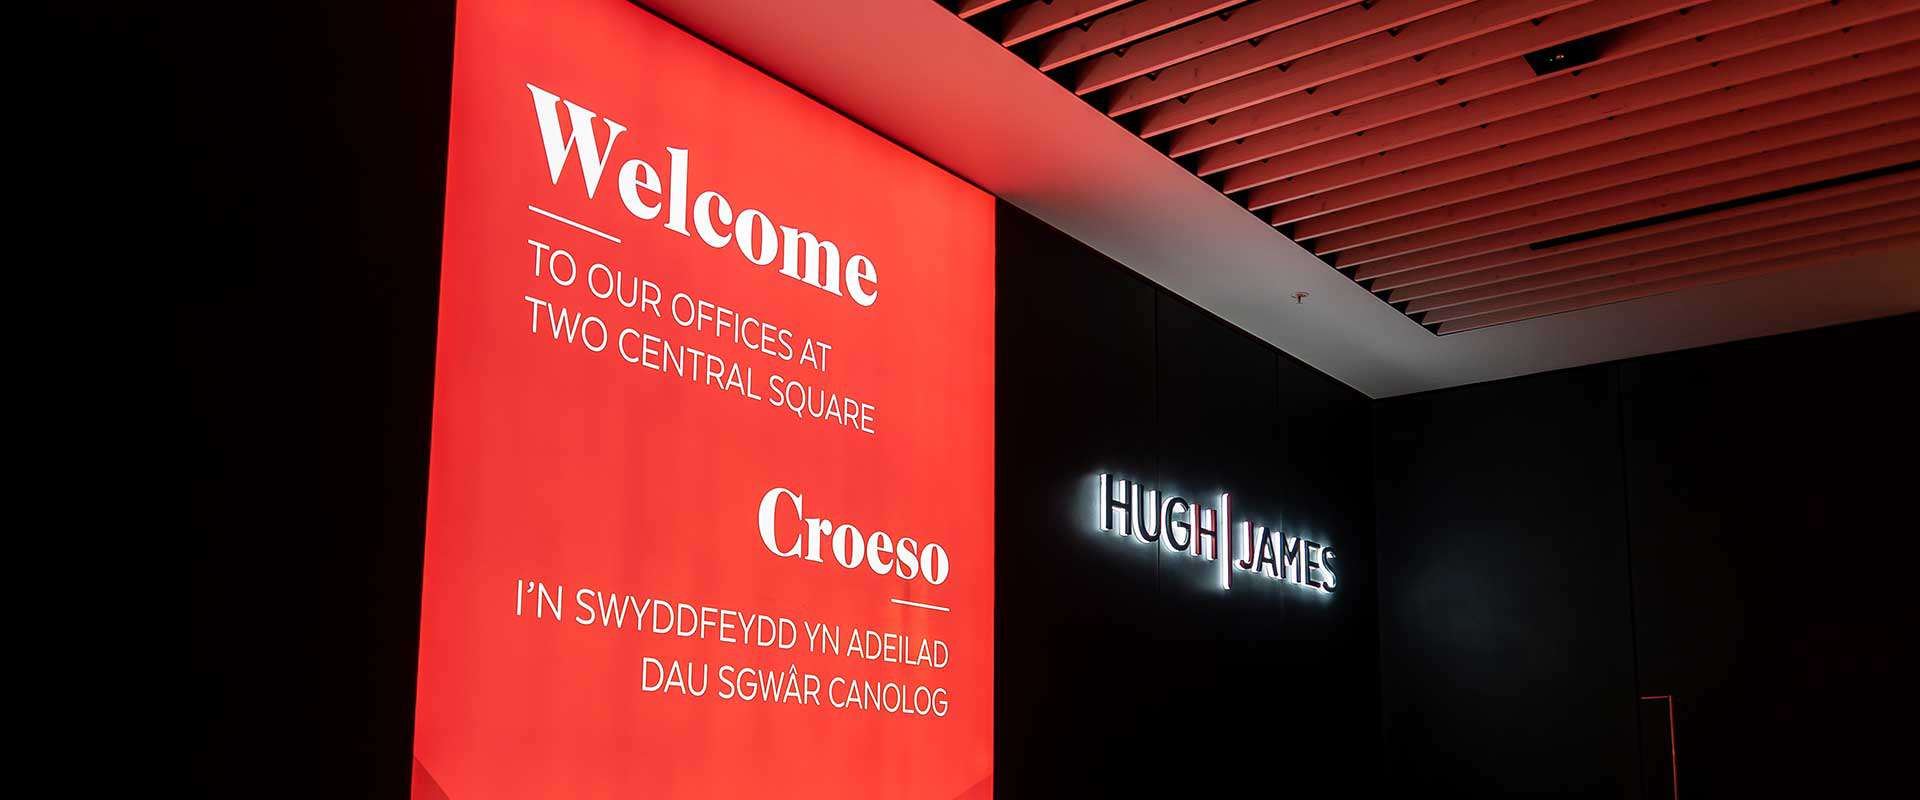 Huw James welcome lightbox sign Cardiff